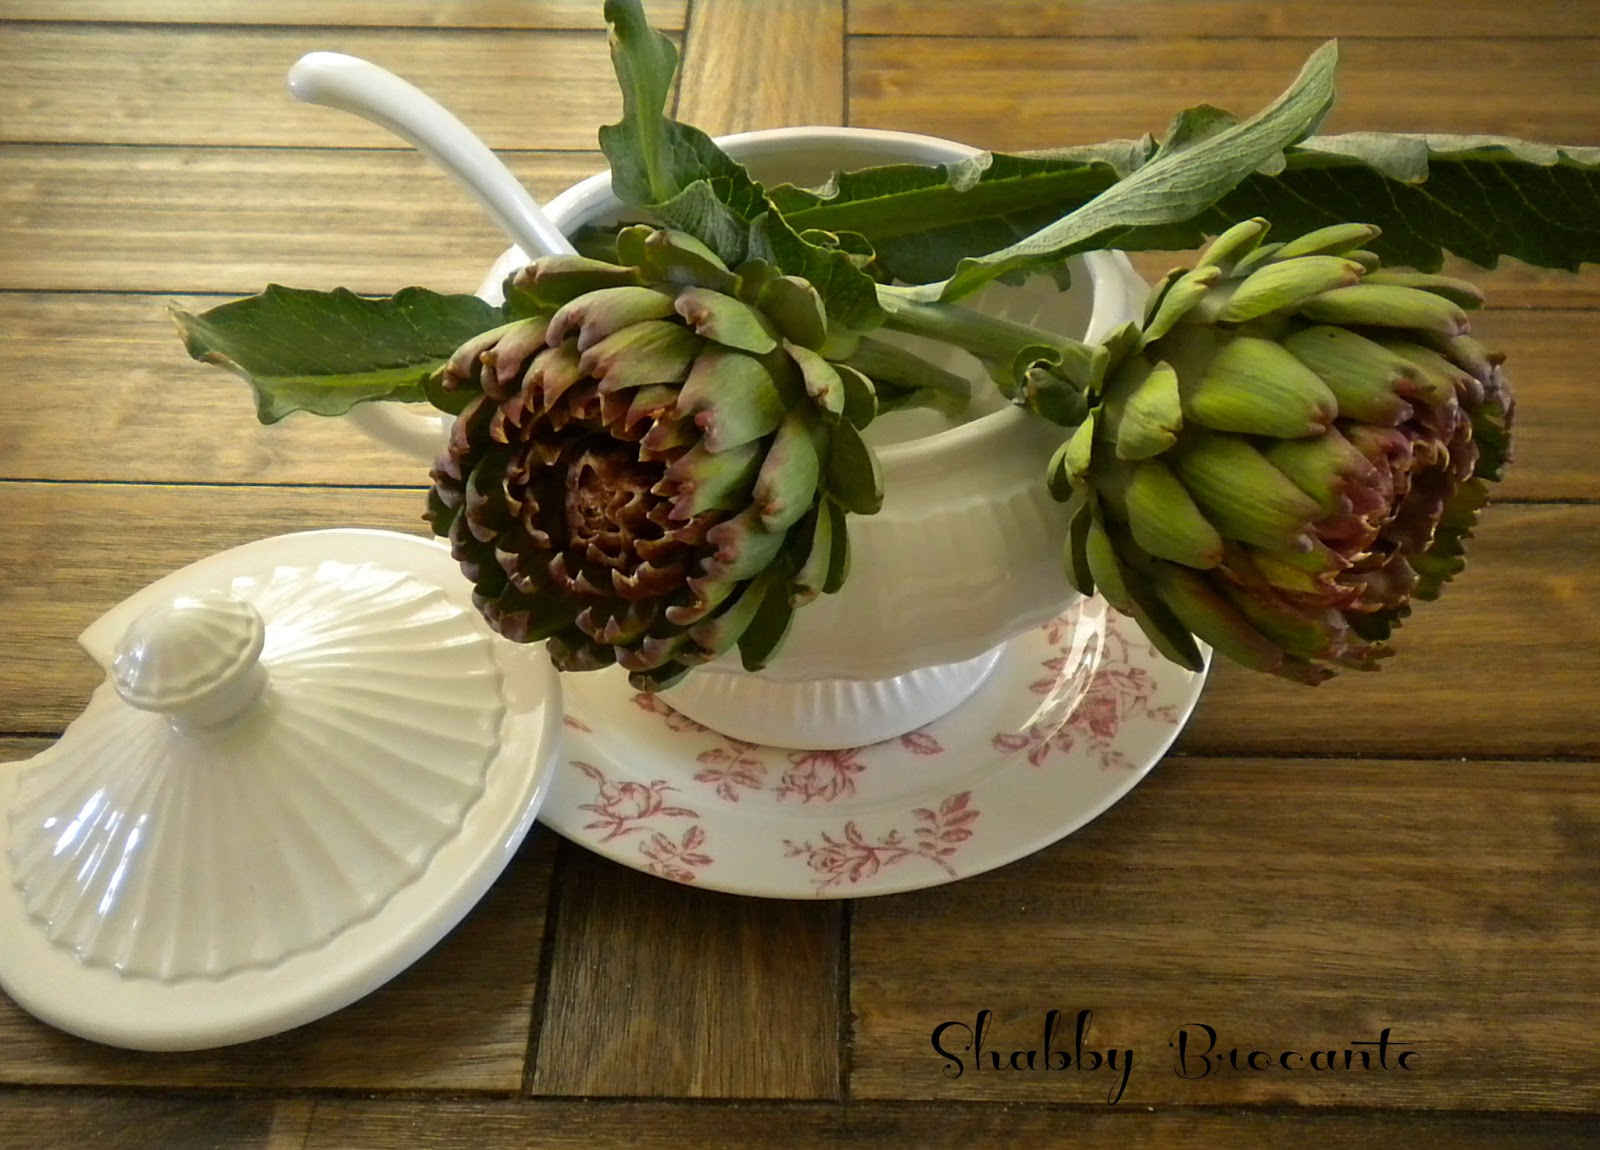 shabby brocante artichokes preparing them and using them